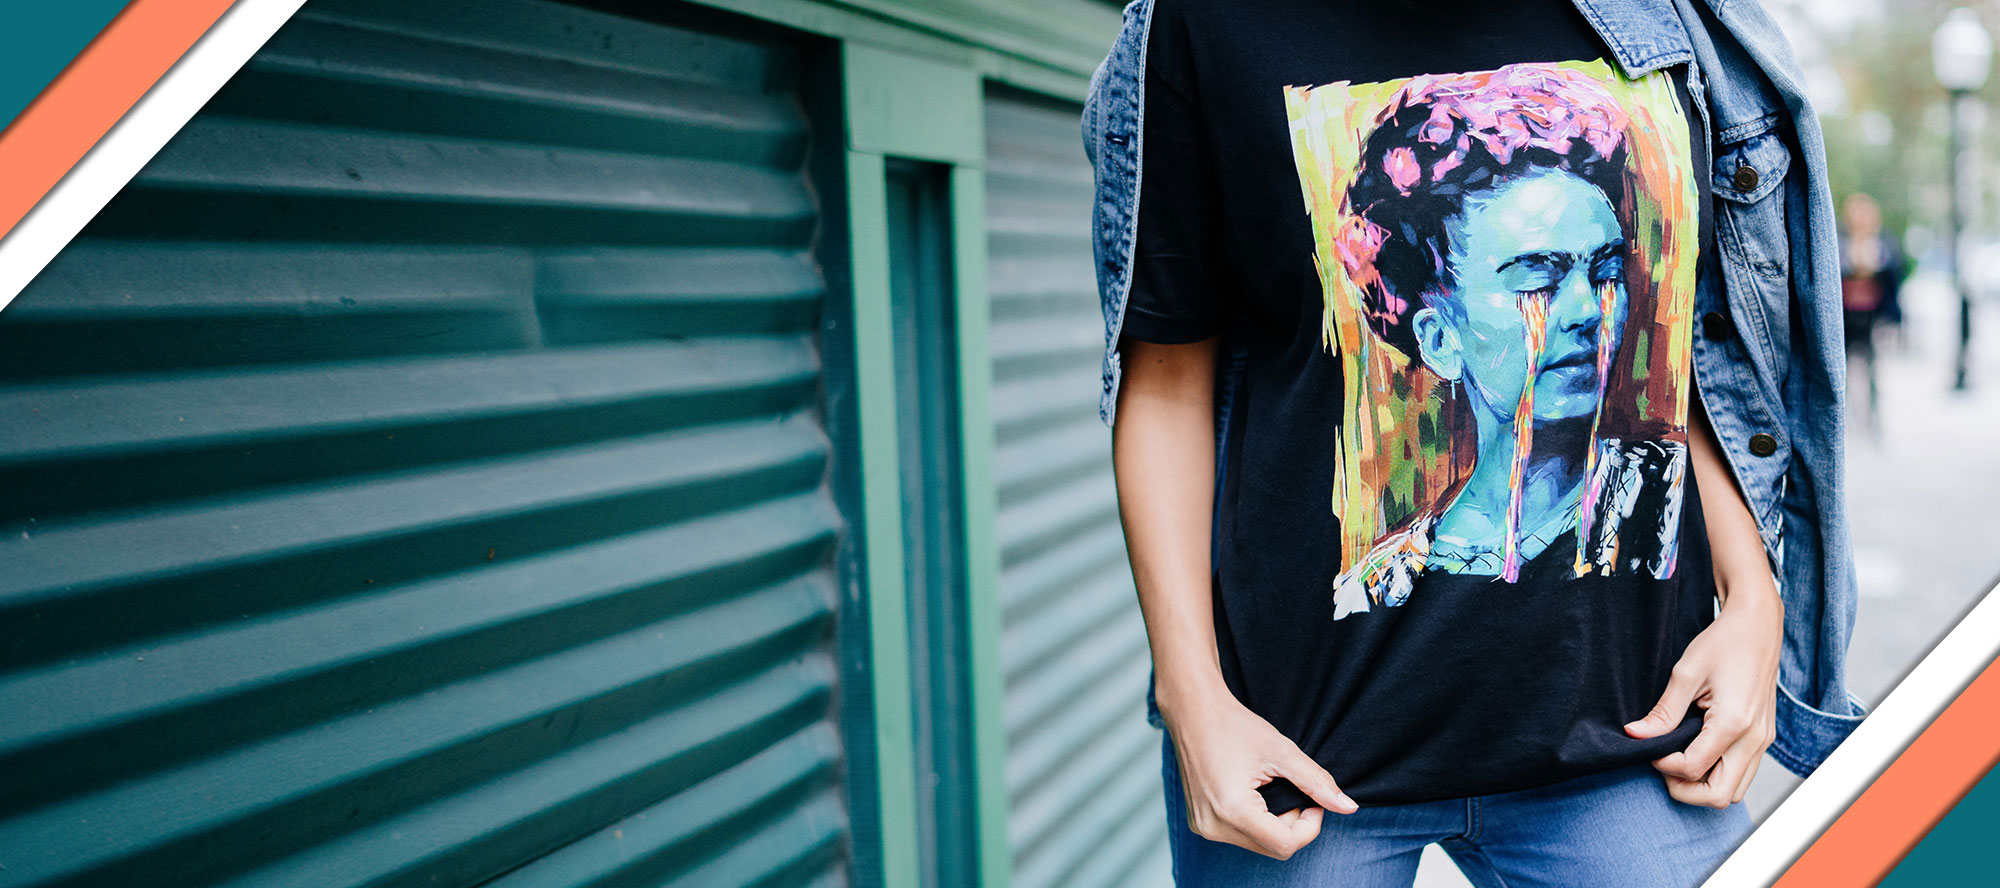 someone showing a shirt with a colorful print